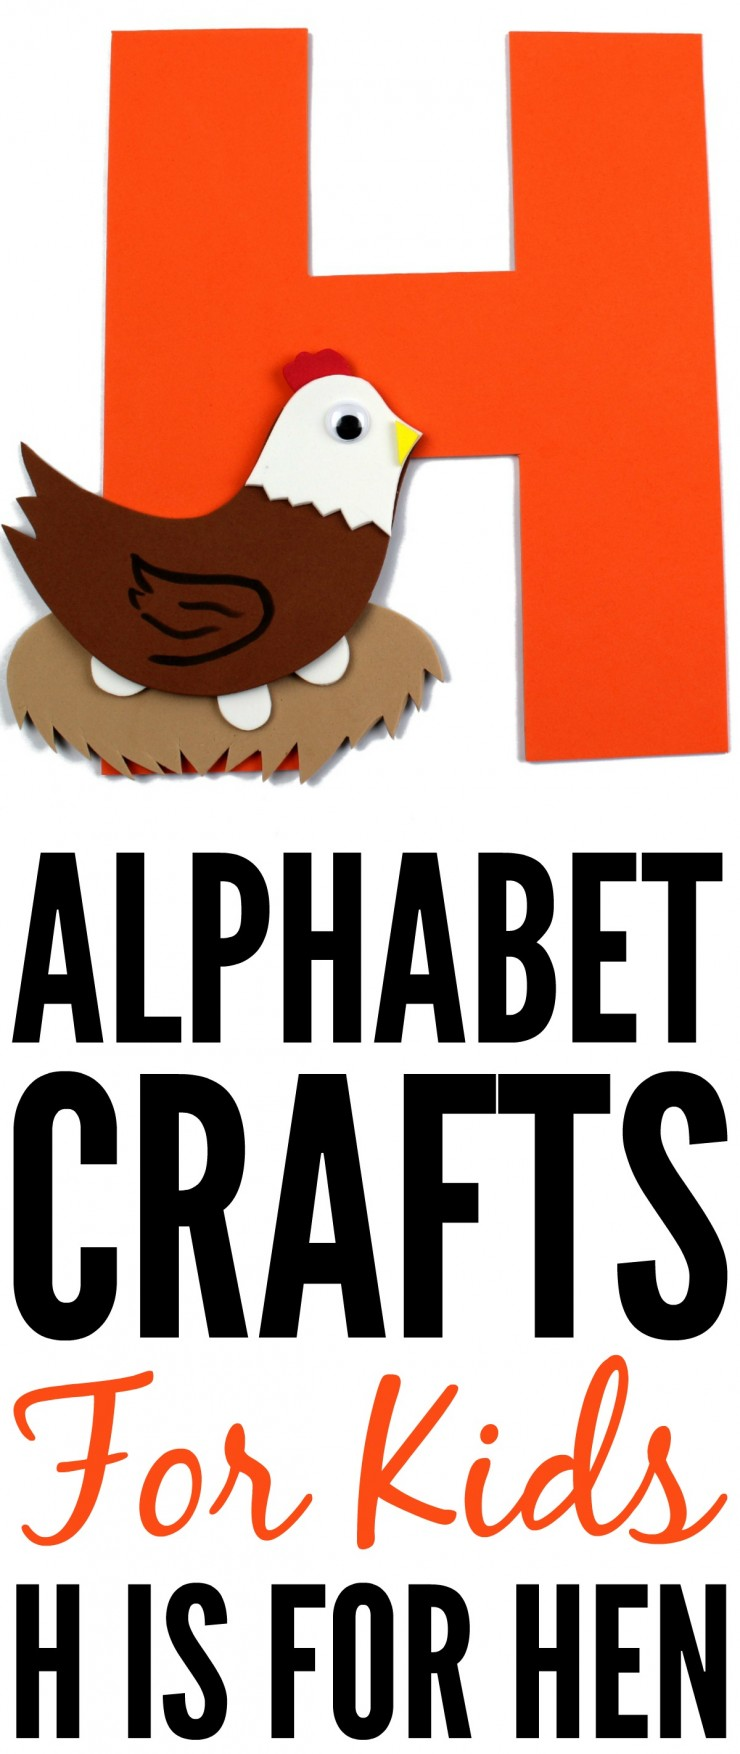 This week is my series of ABCs kids crafts featuring the Alphabet, we are doing an H is for Hen craft. These Alphabet Crafts For Kids are a fun way to introduce your child to the alphabet.